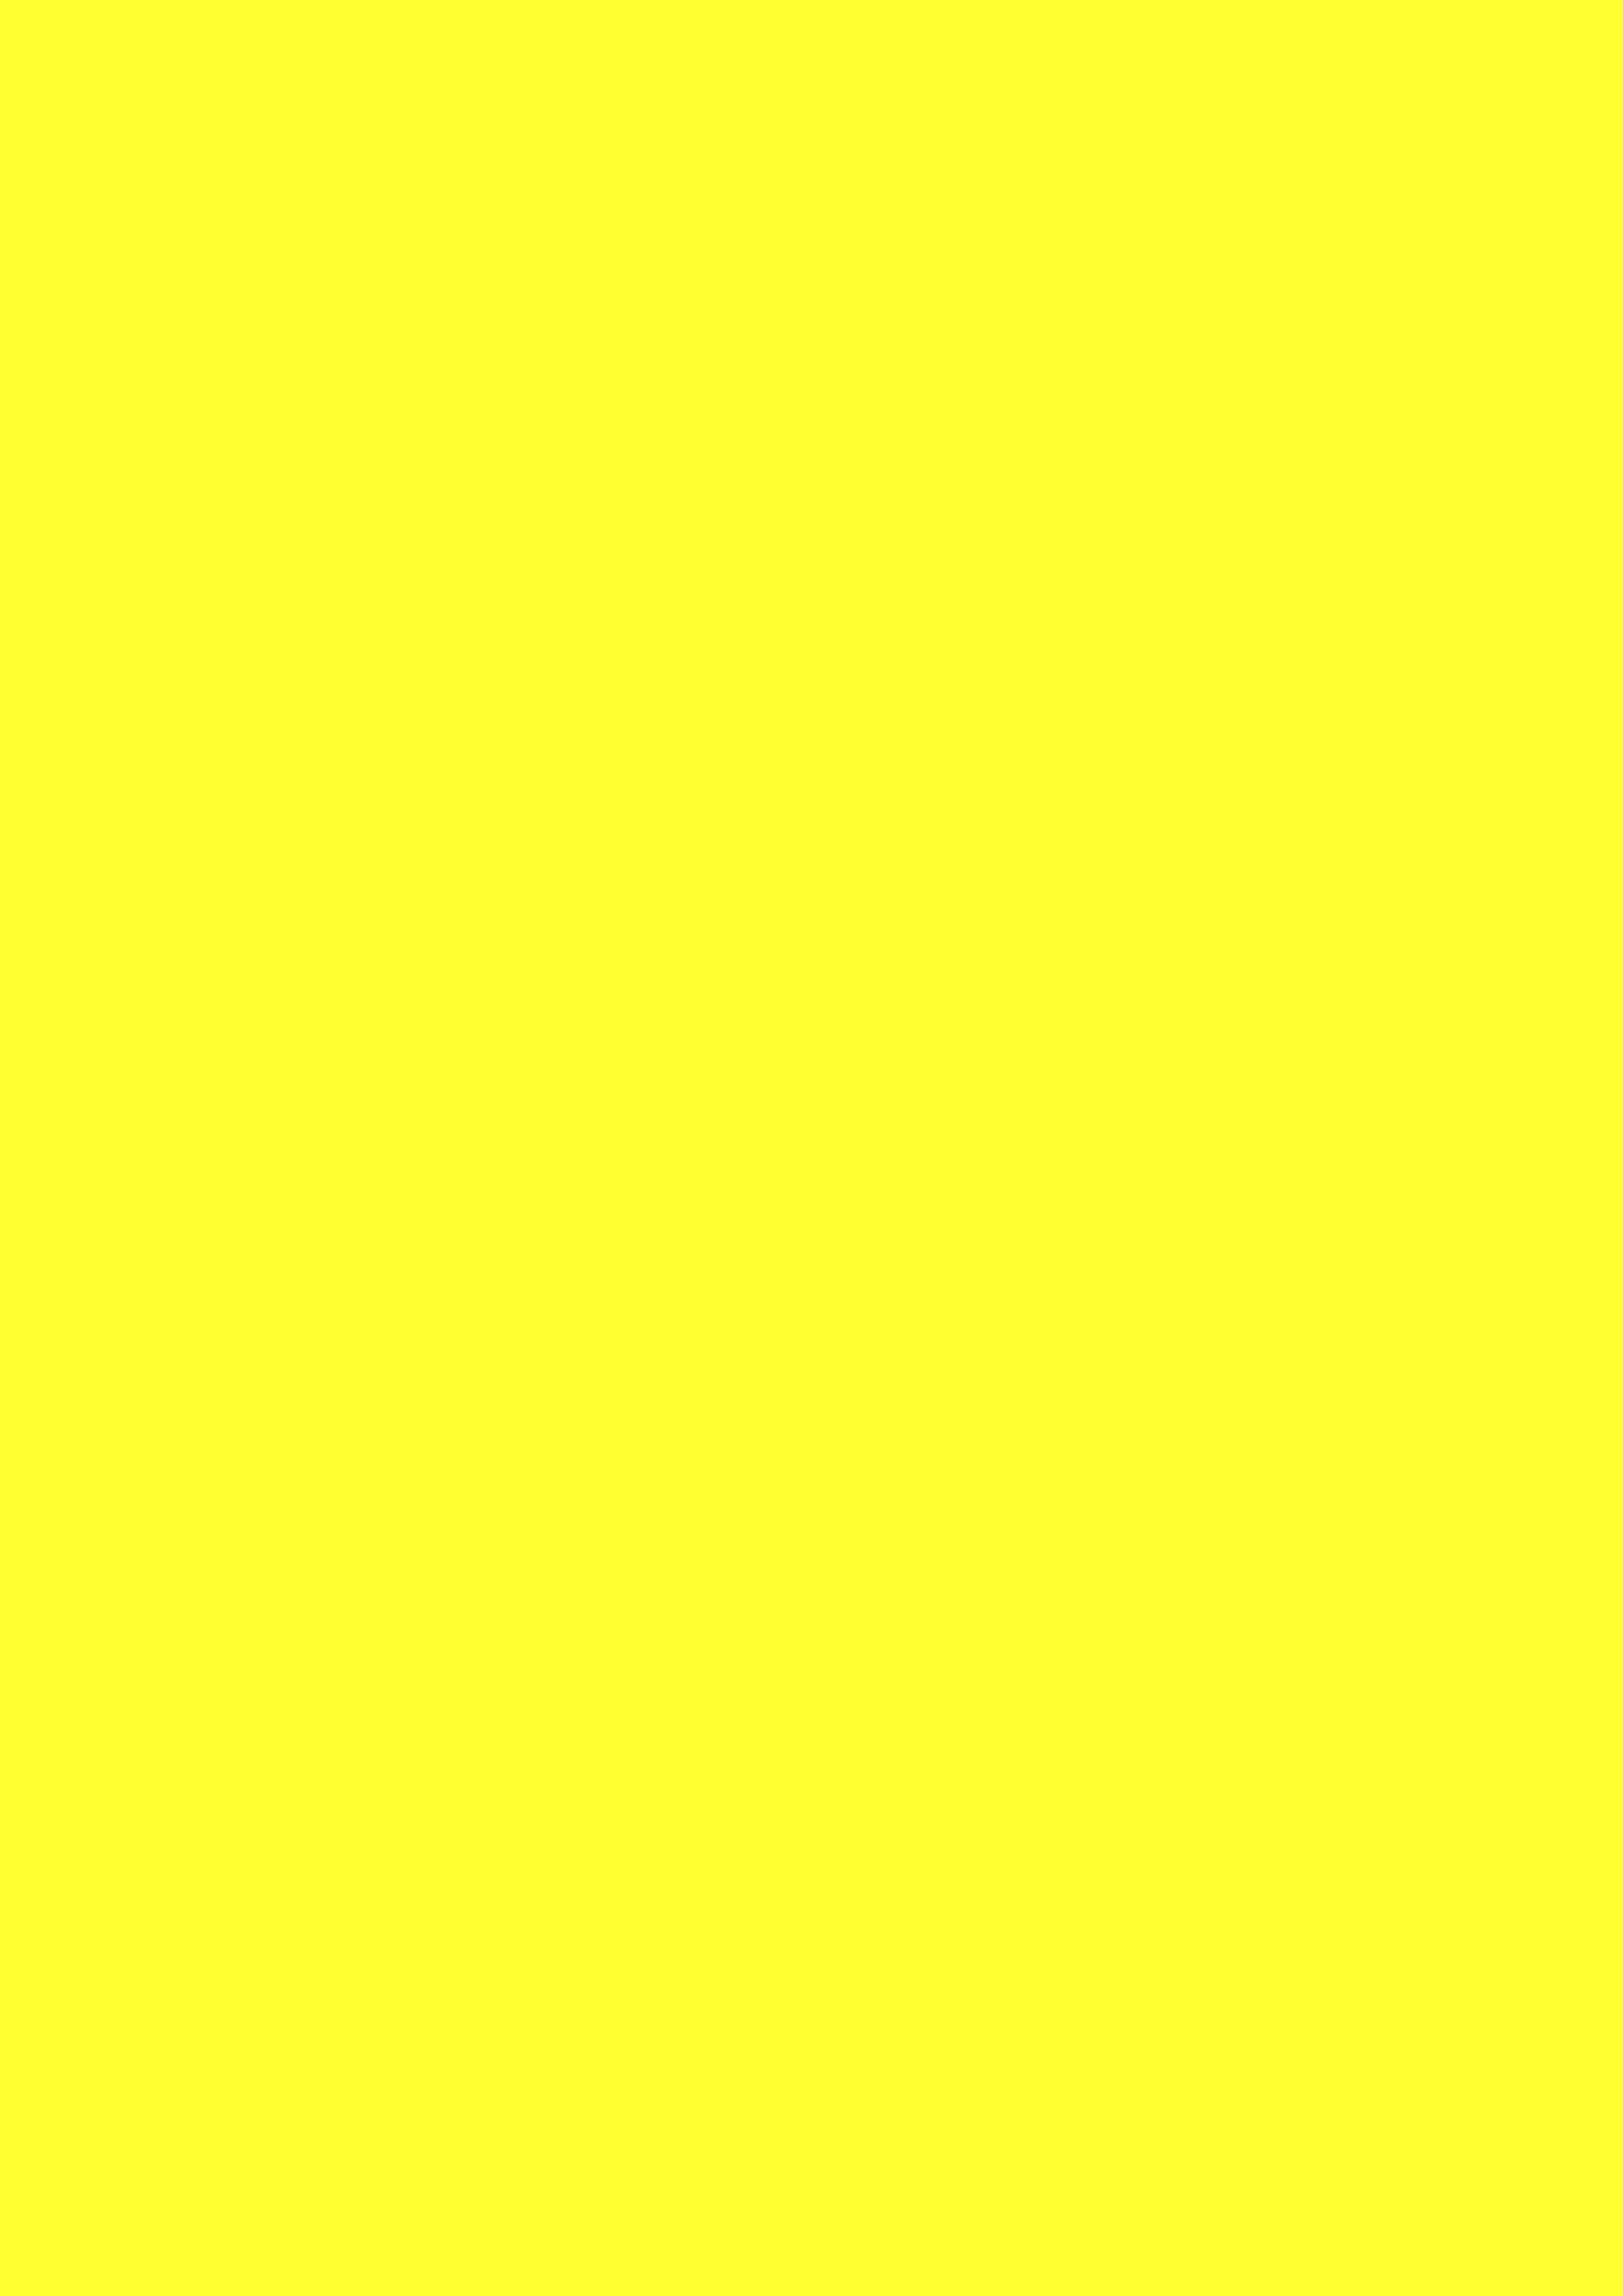 2480x3508 Daffodil Solid Color Background